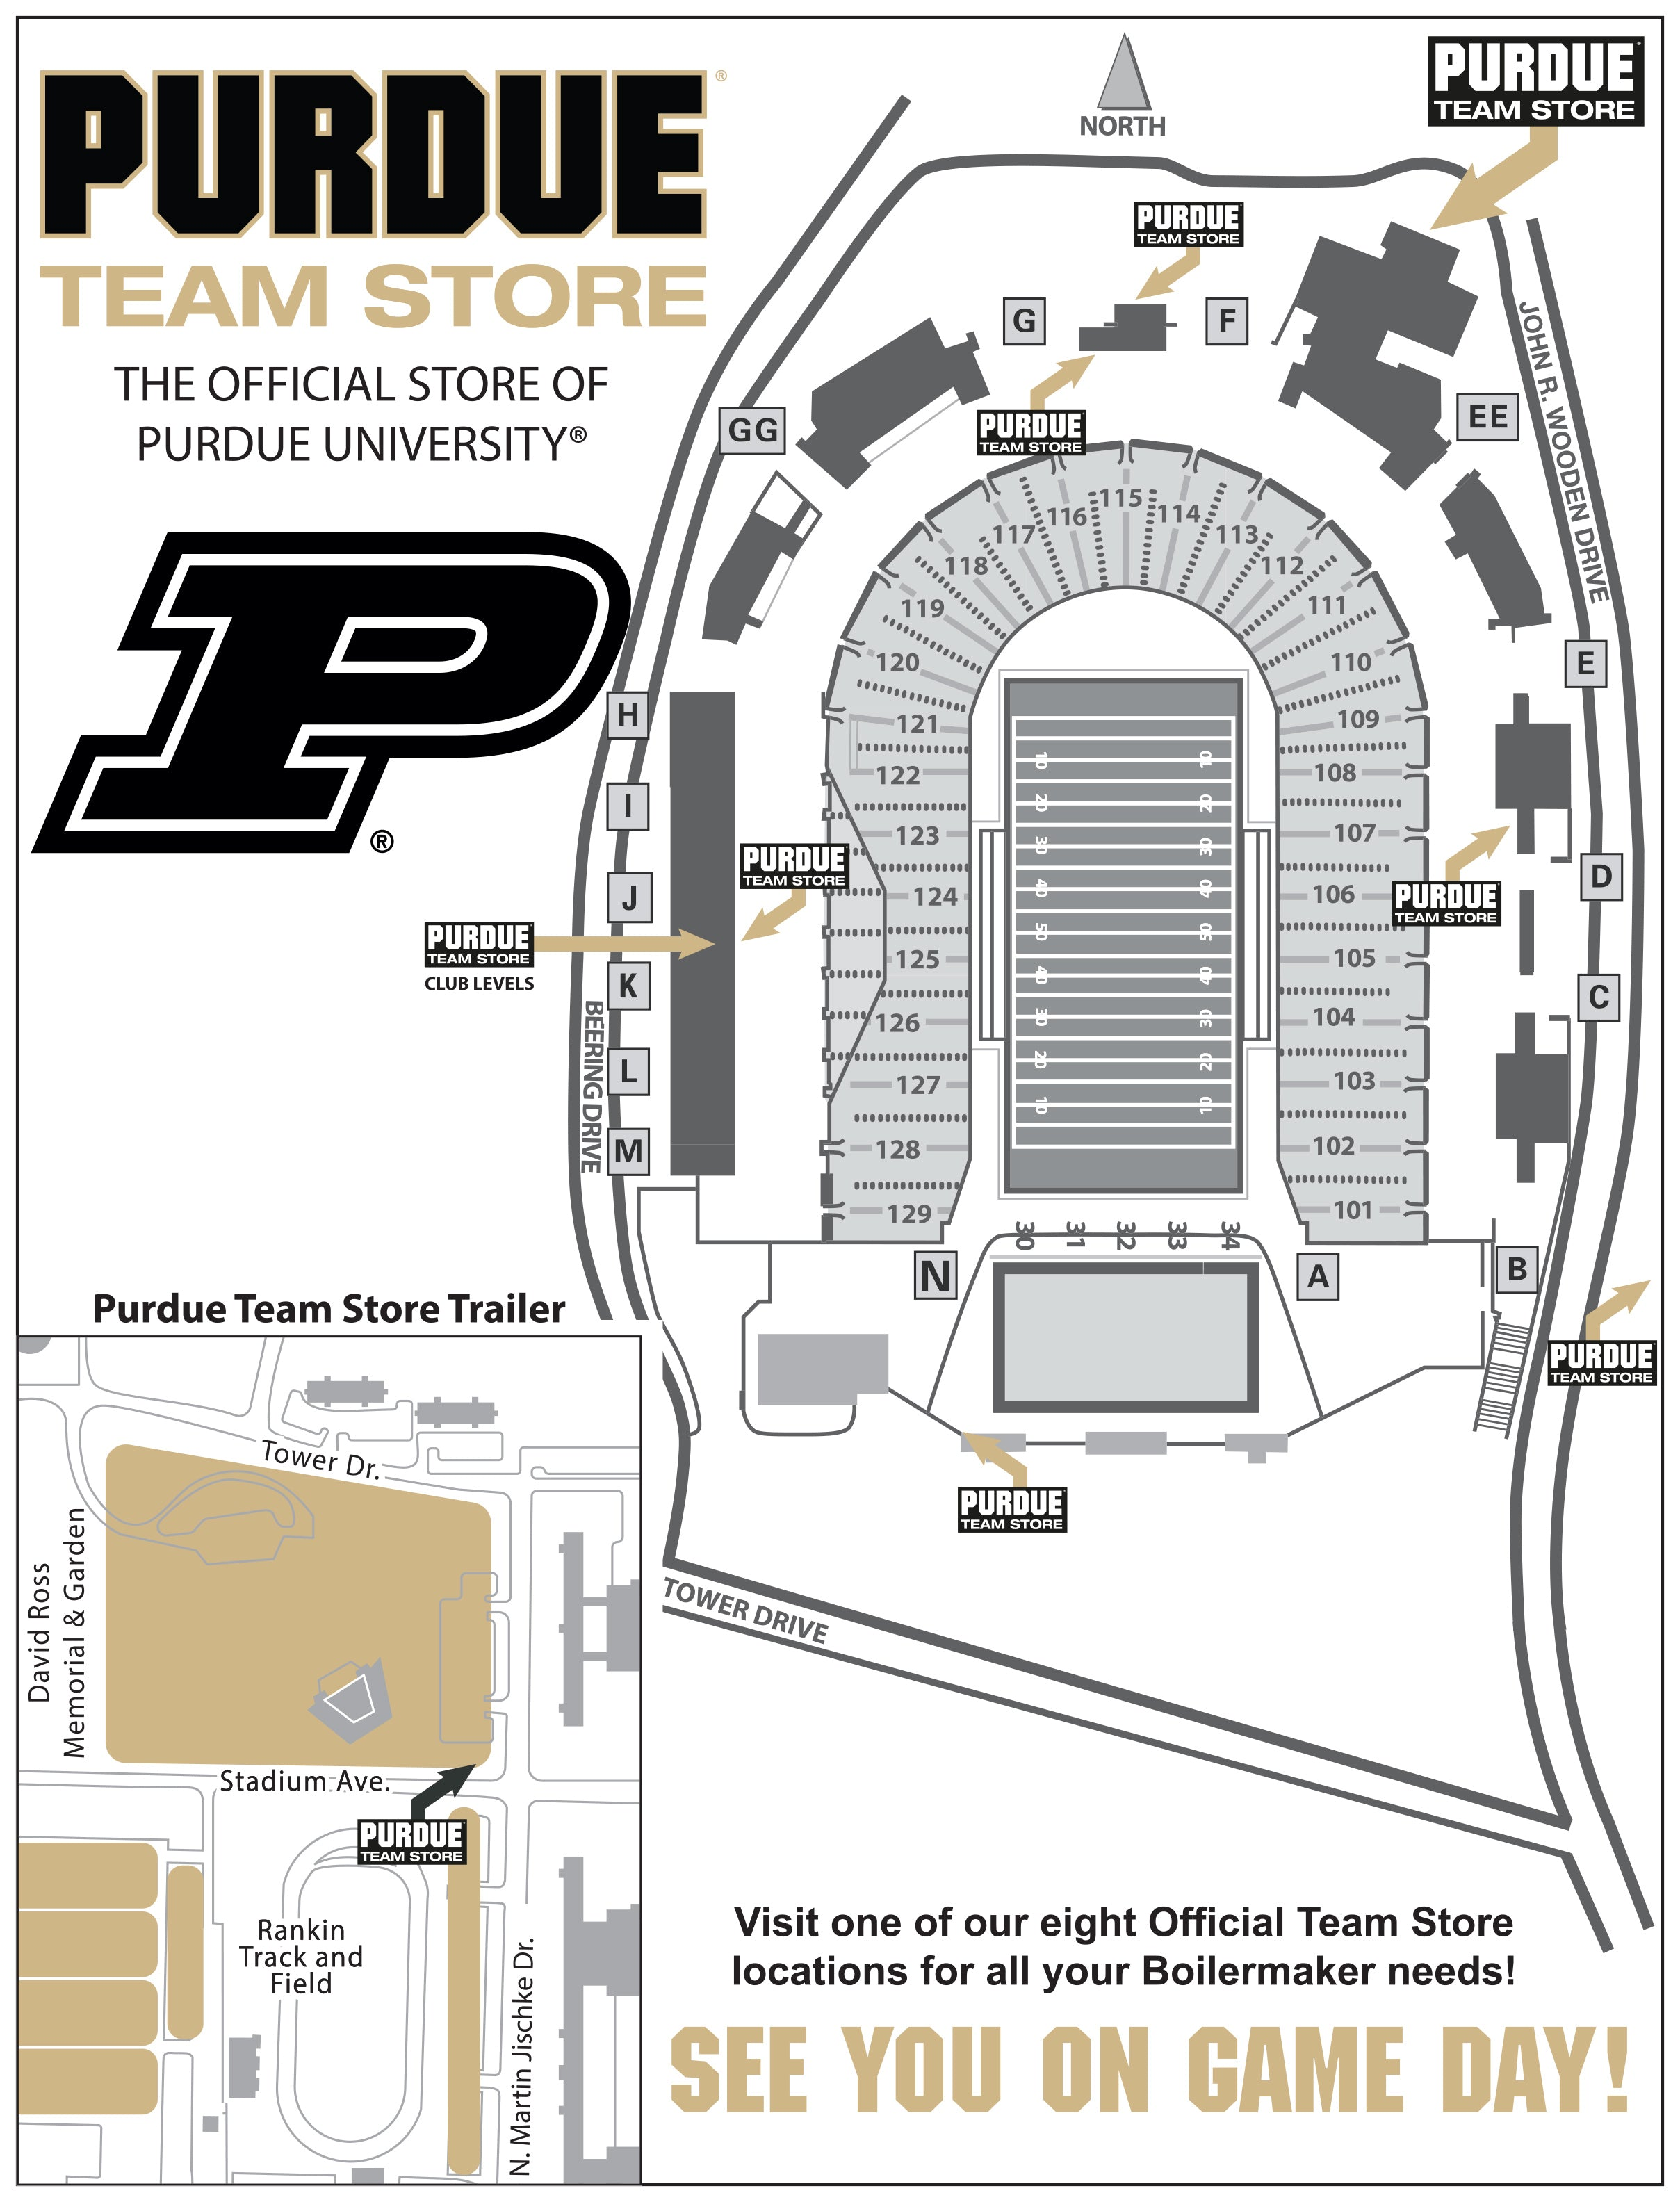 Map of Game Day Locations